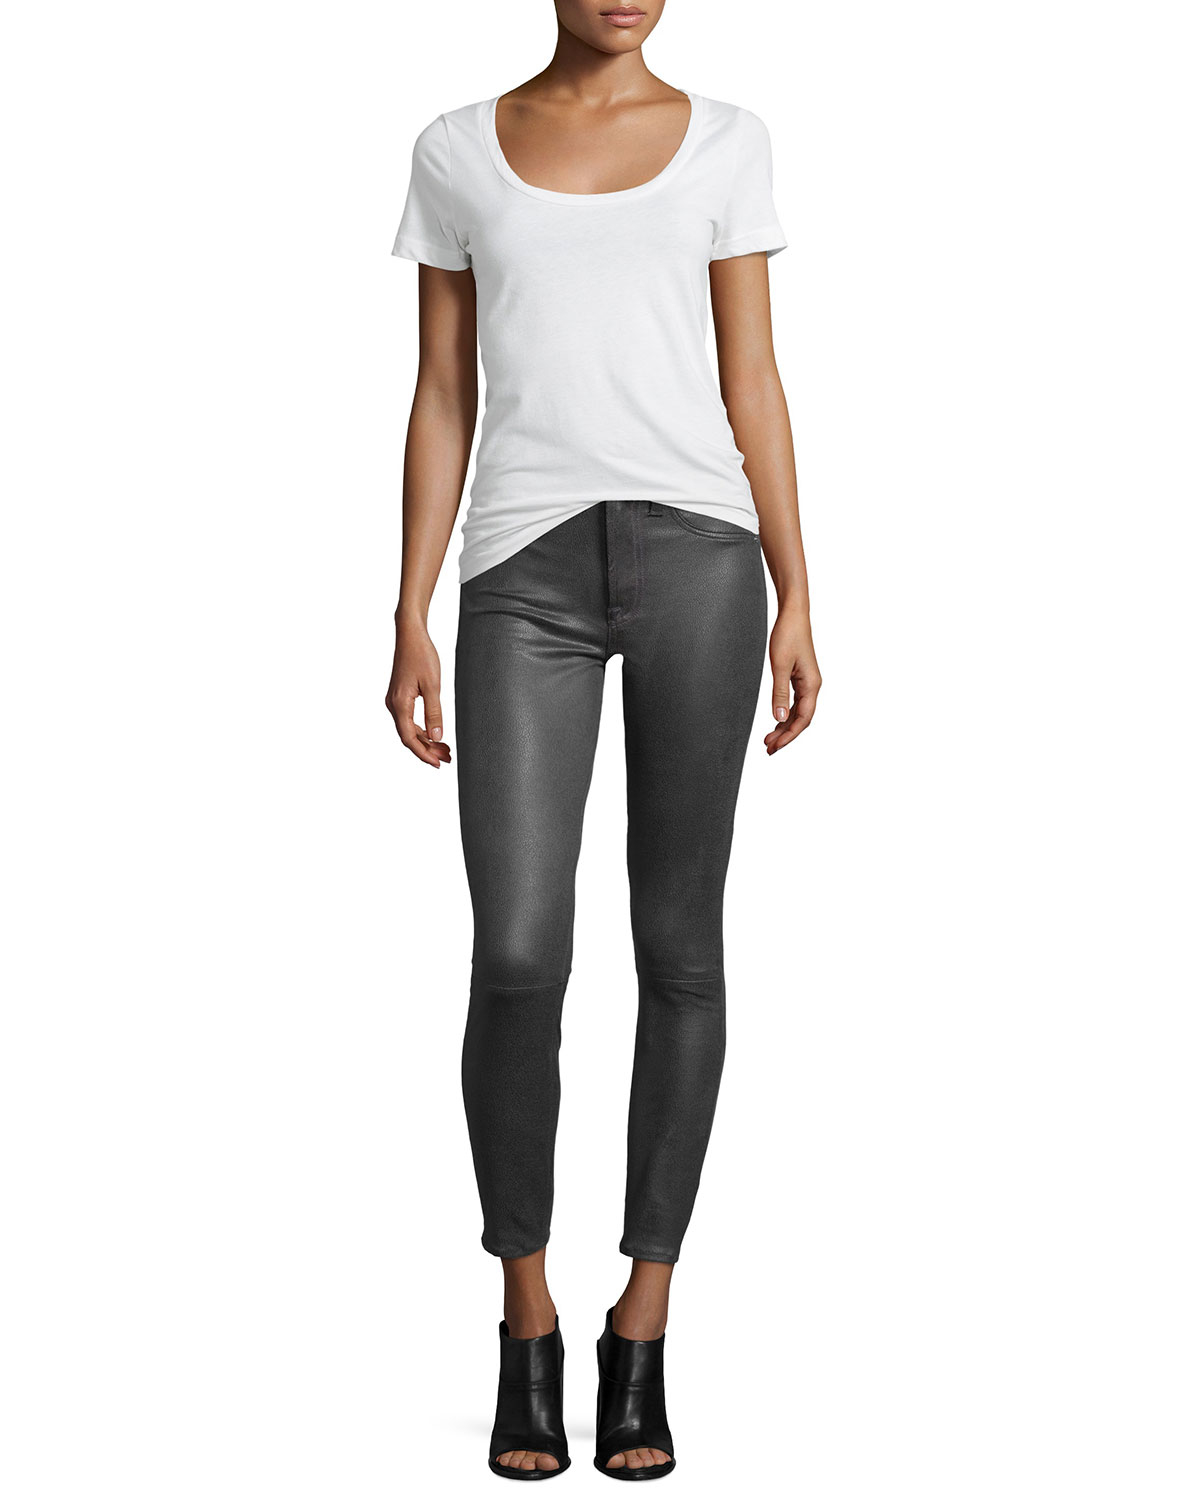 7 for all mankind High Waist Ankle Skinny Crackle Leather-like ...